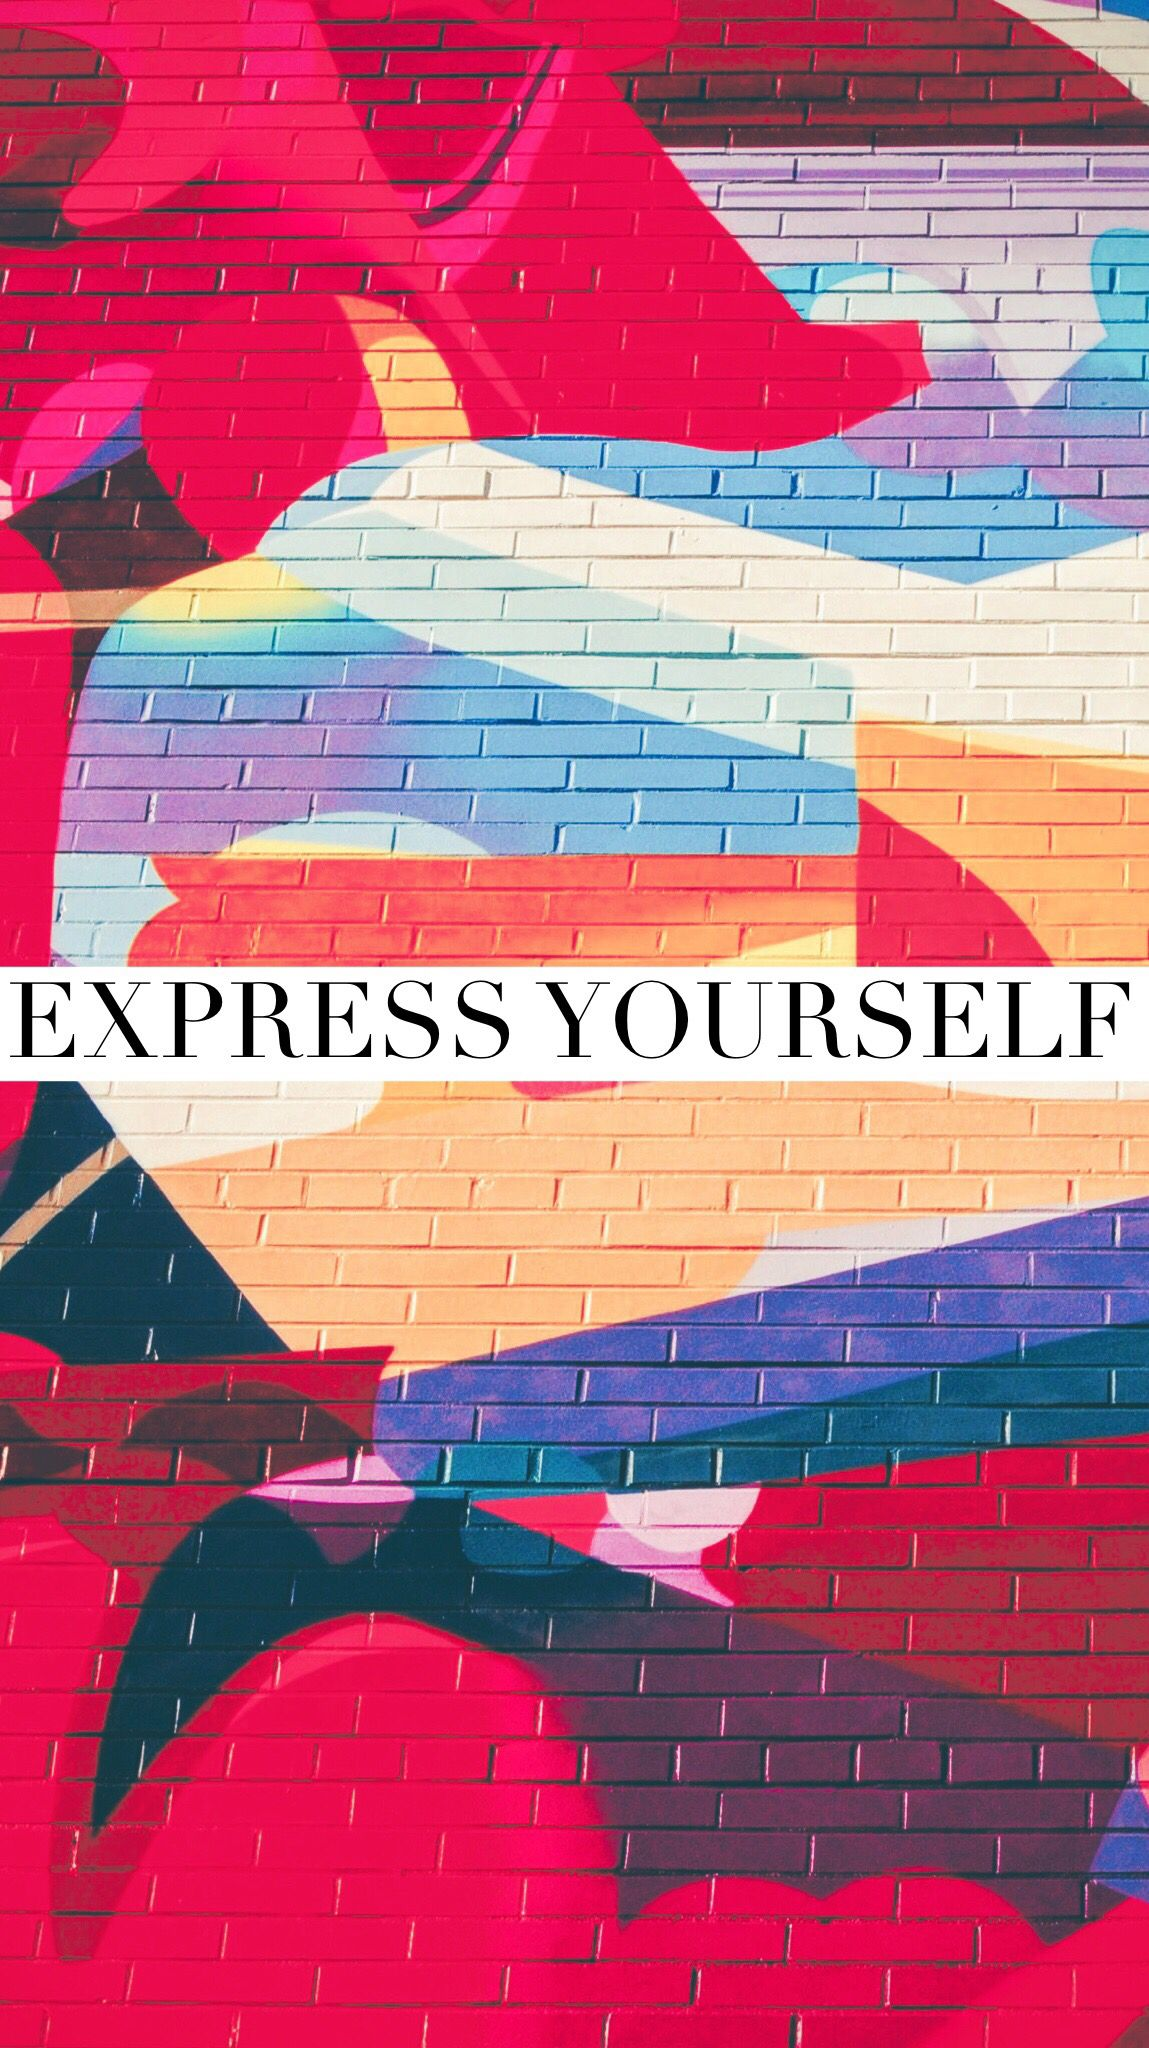 Arte Express Yourself Express Yourself Motivation Quotes Art Streetart Feelgood